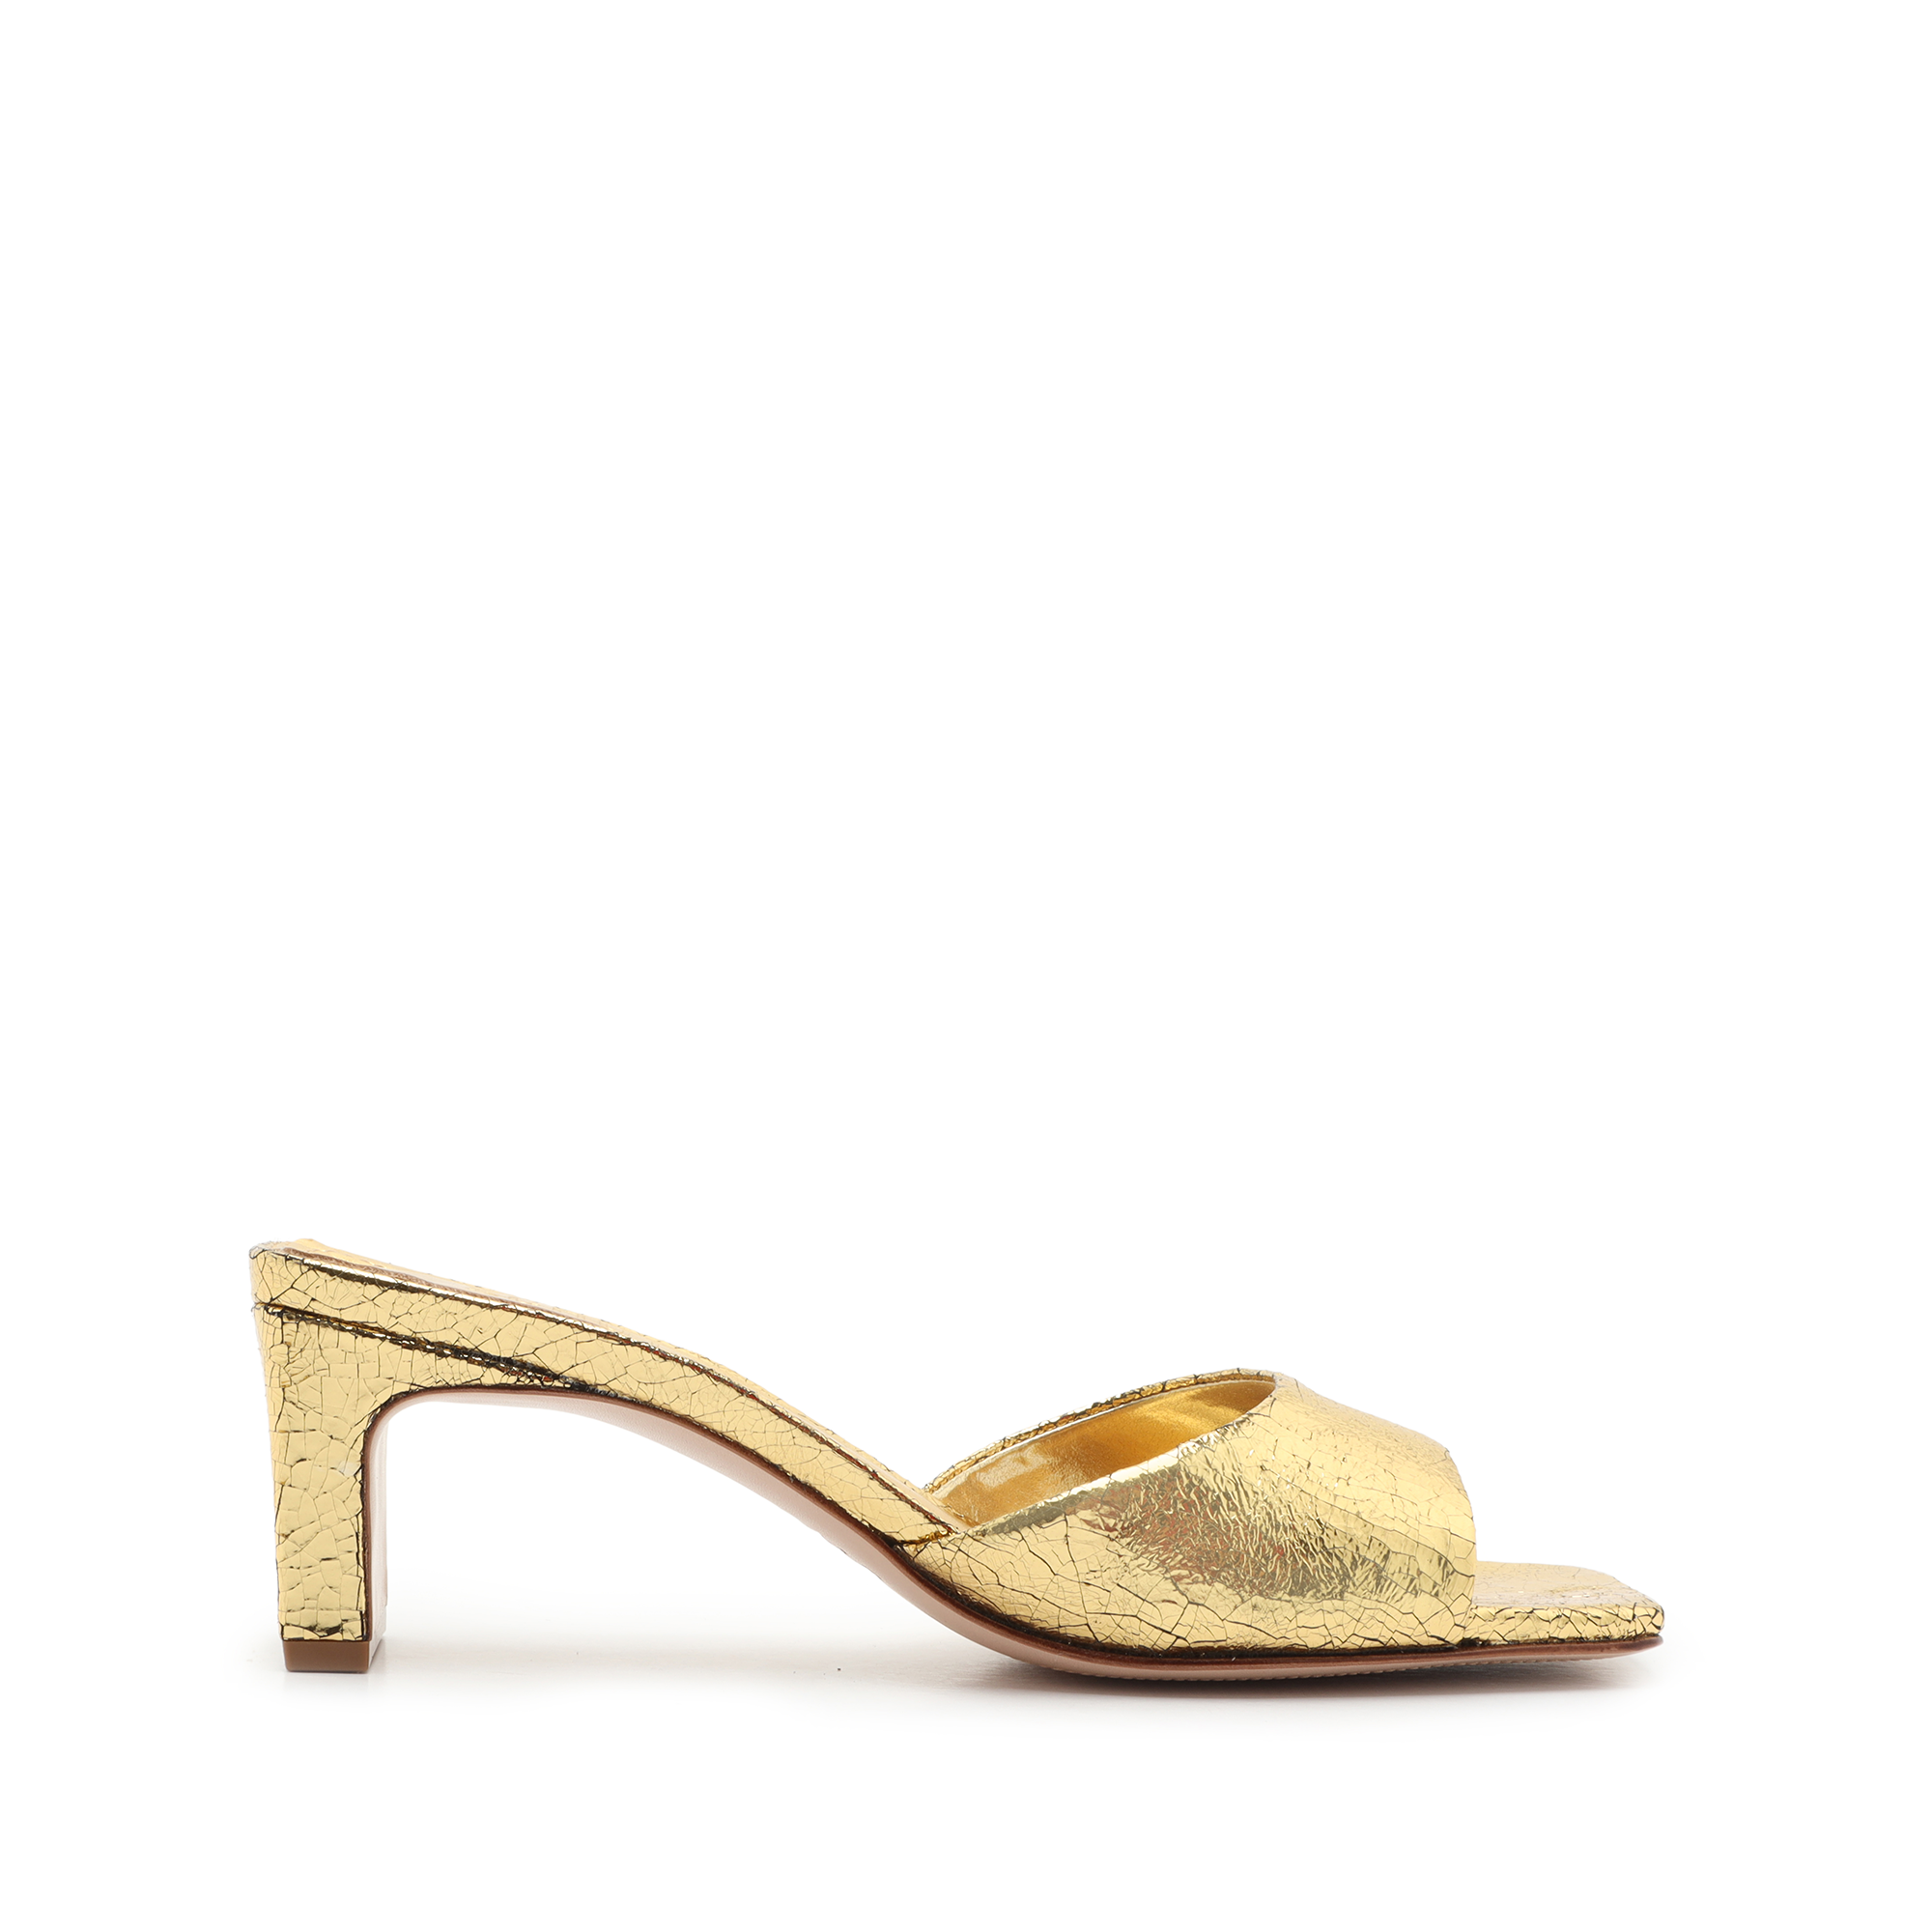 Queliana Sandal